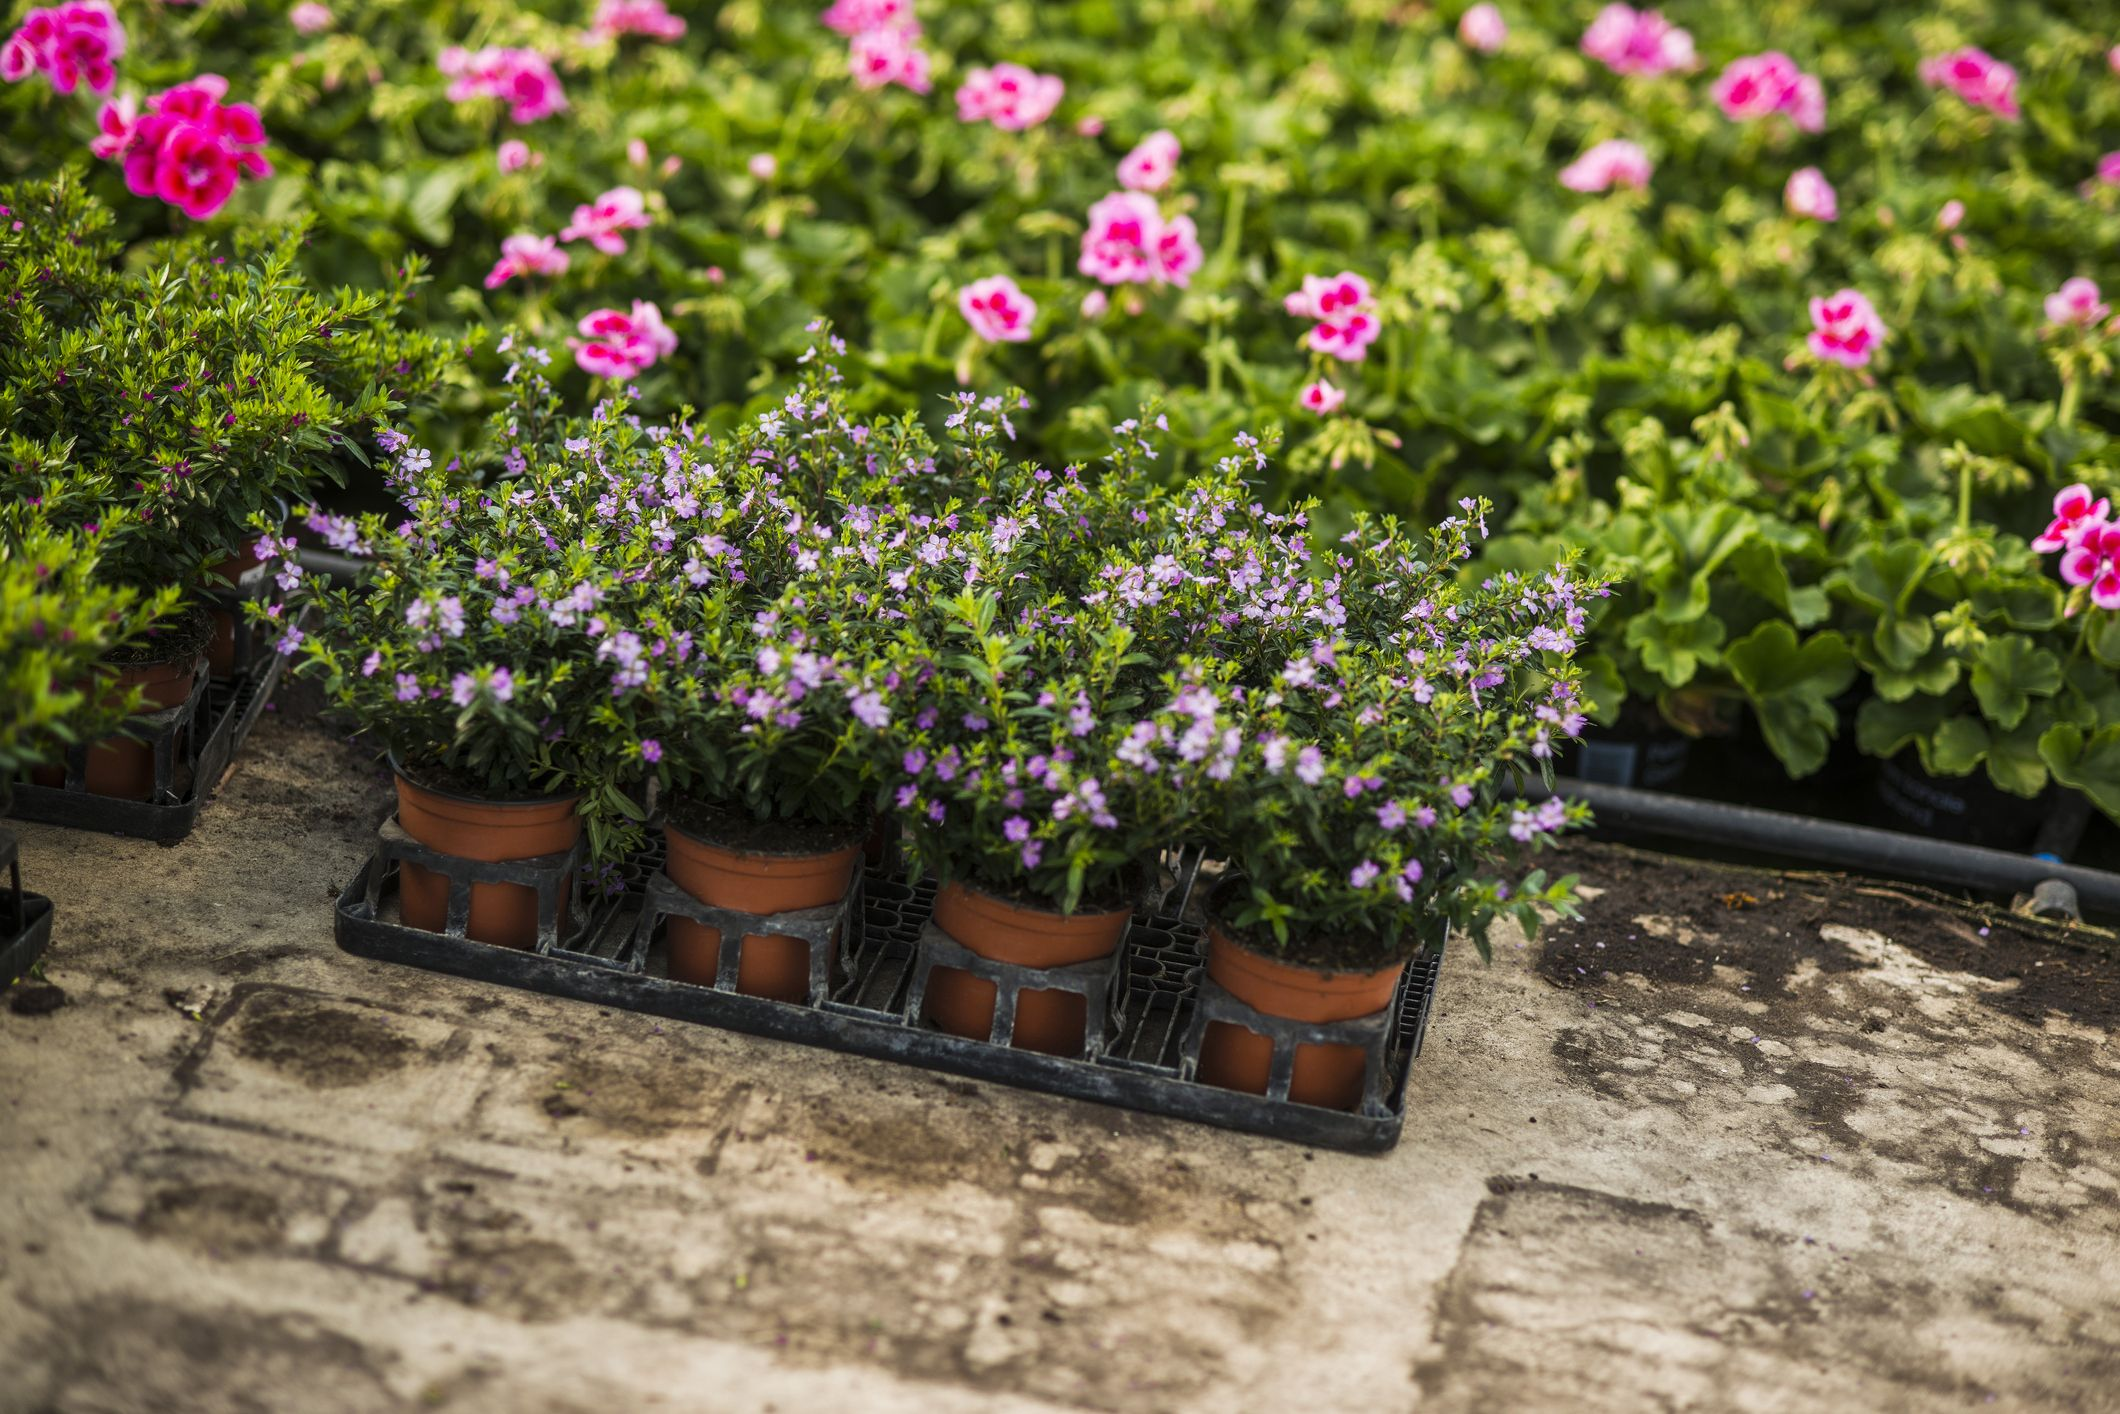 Best Places To Buy Plants For Garden Without Spending A Fortune